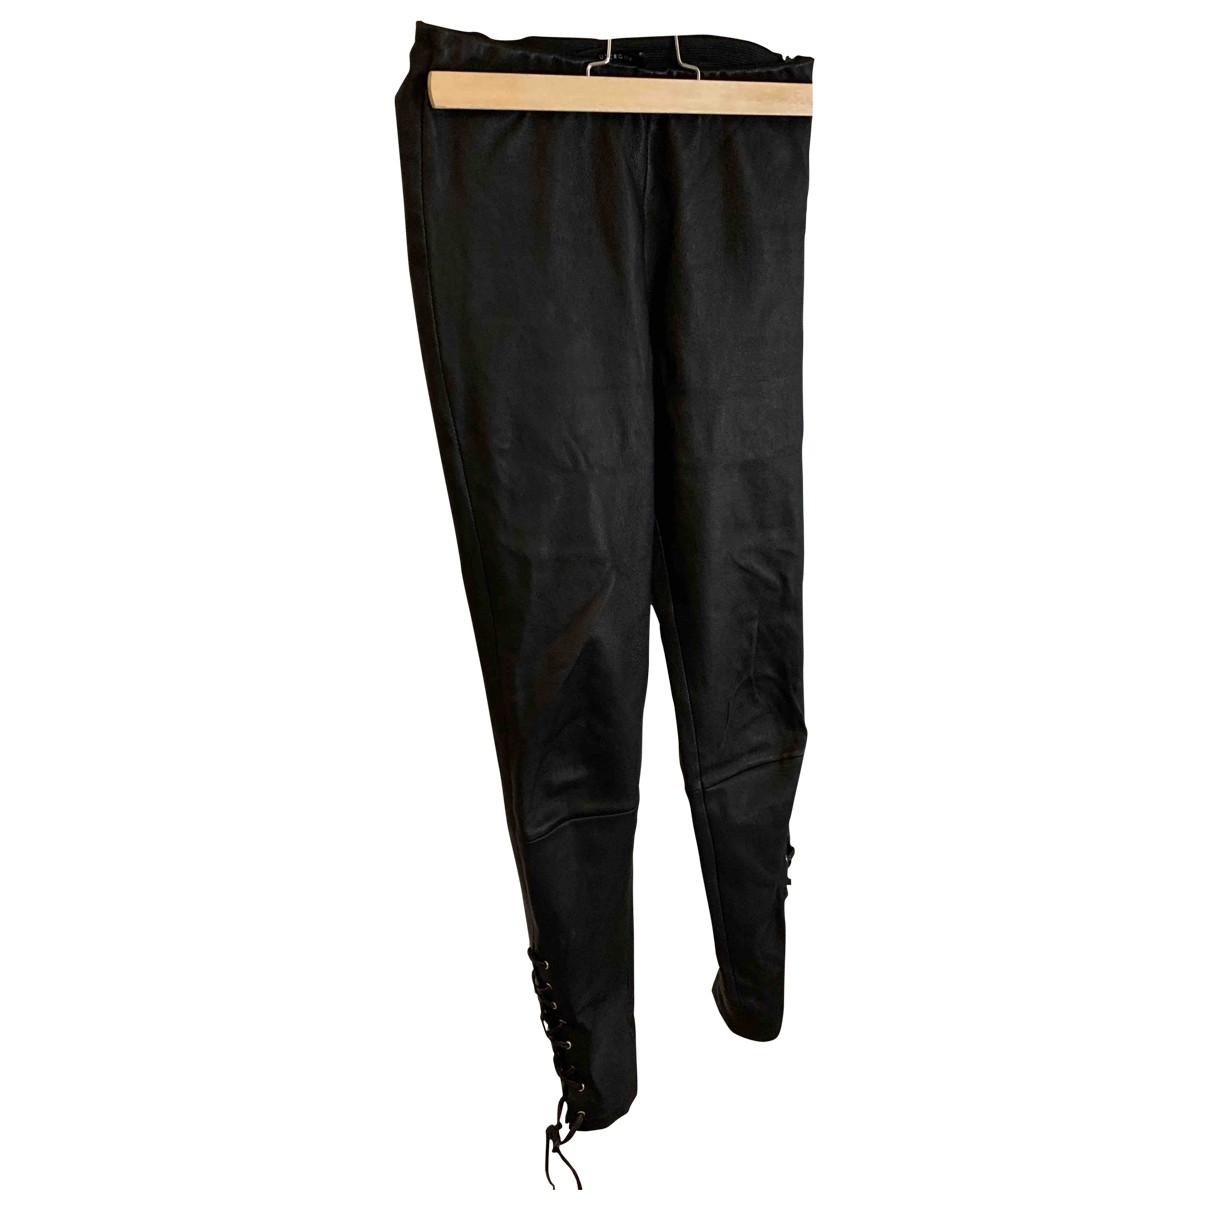 Uterque \N Black Leather Trousers for Women XS International